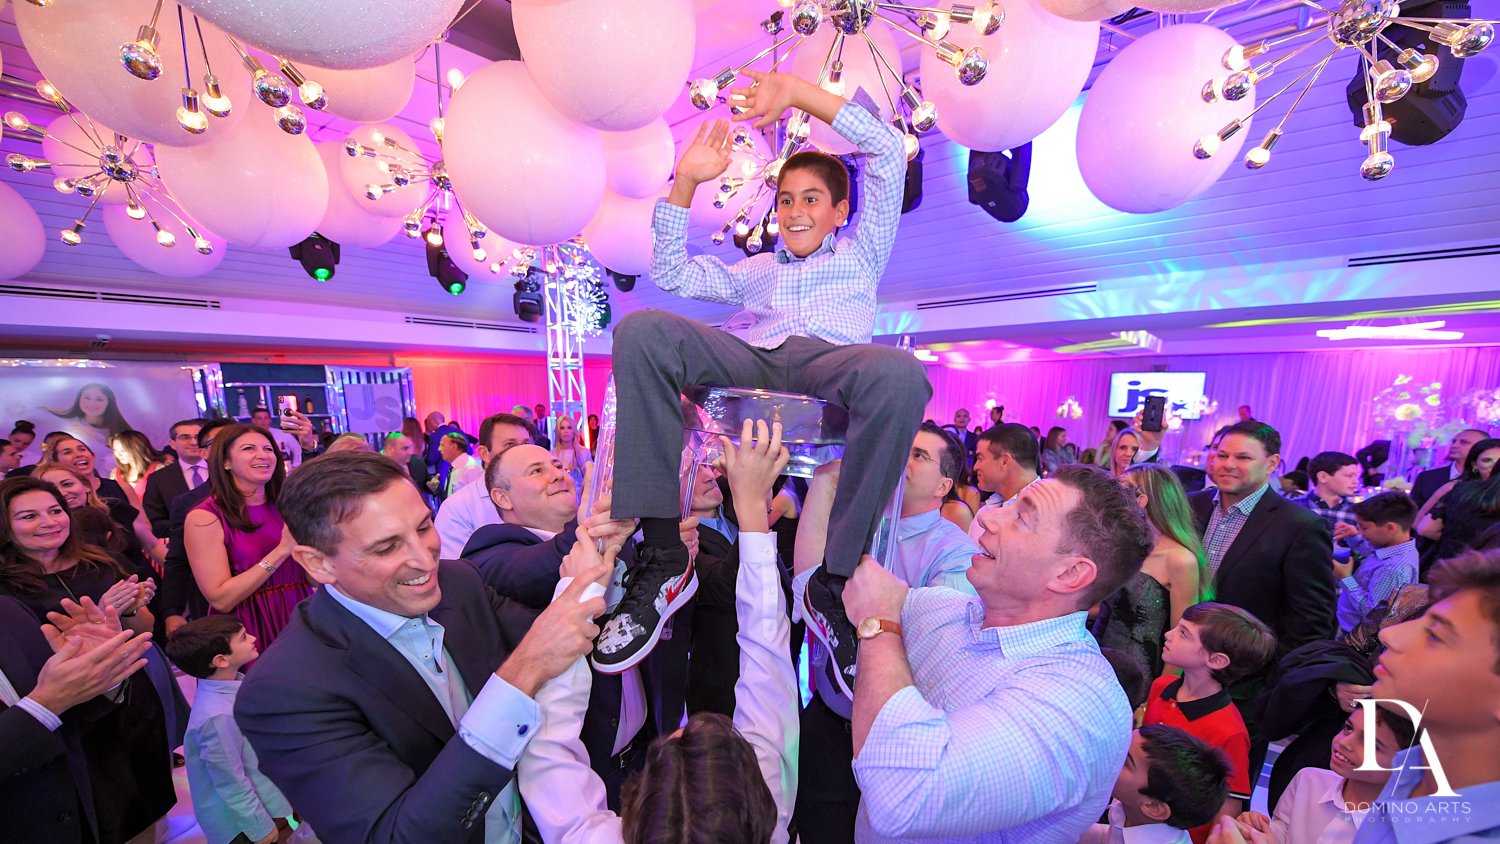 hora at Trendy Decor Bat Mitzvah at St Andrews Country Club by Domino Arts Photography